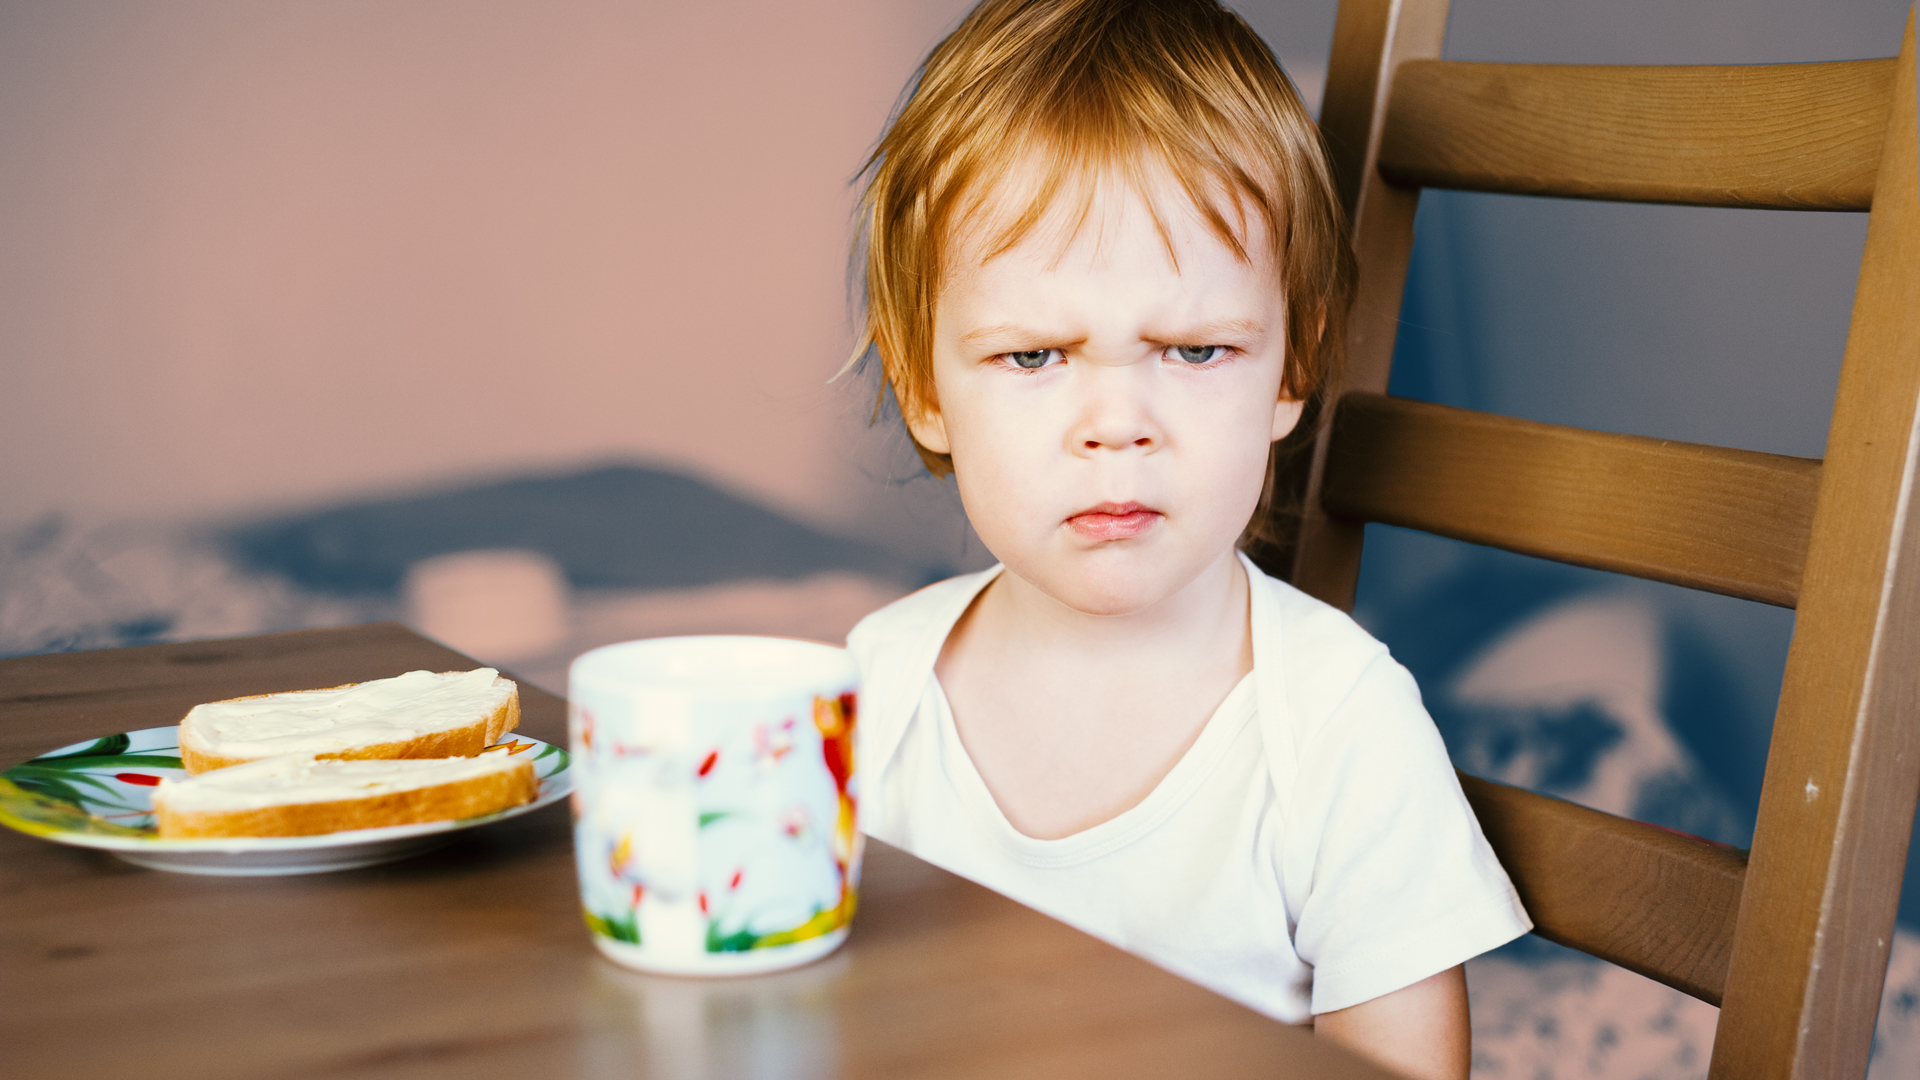 Is Your Kid One of These 5 Types of Picky Eaters?